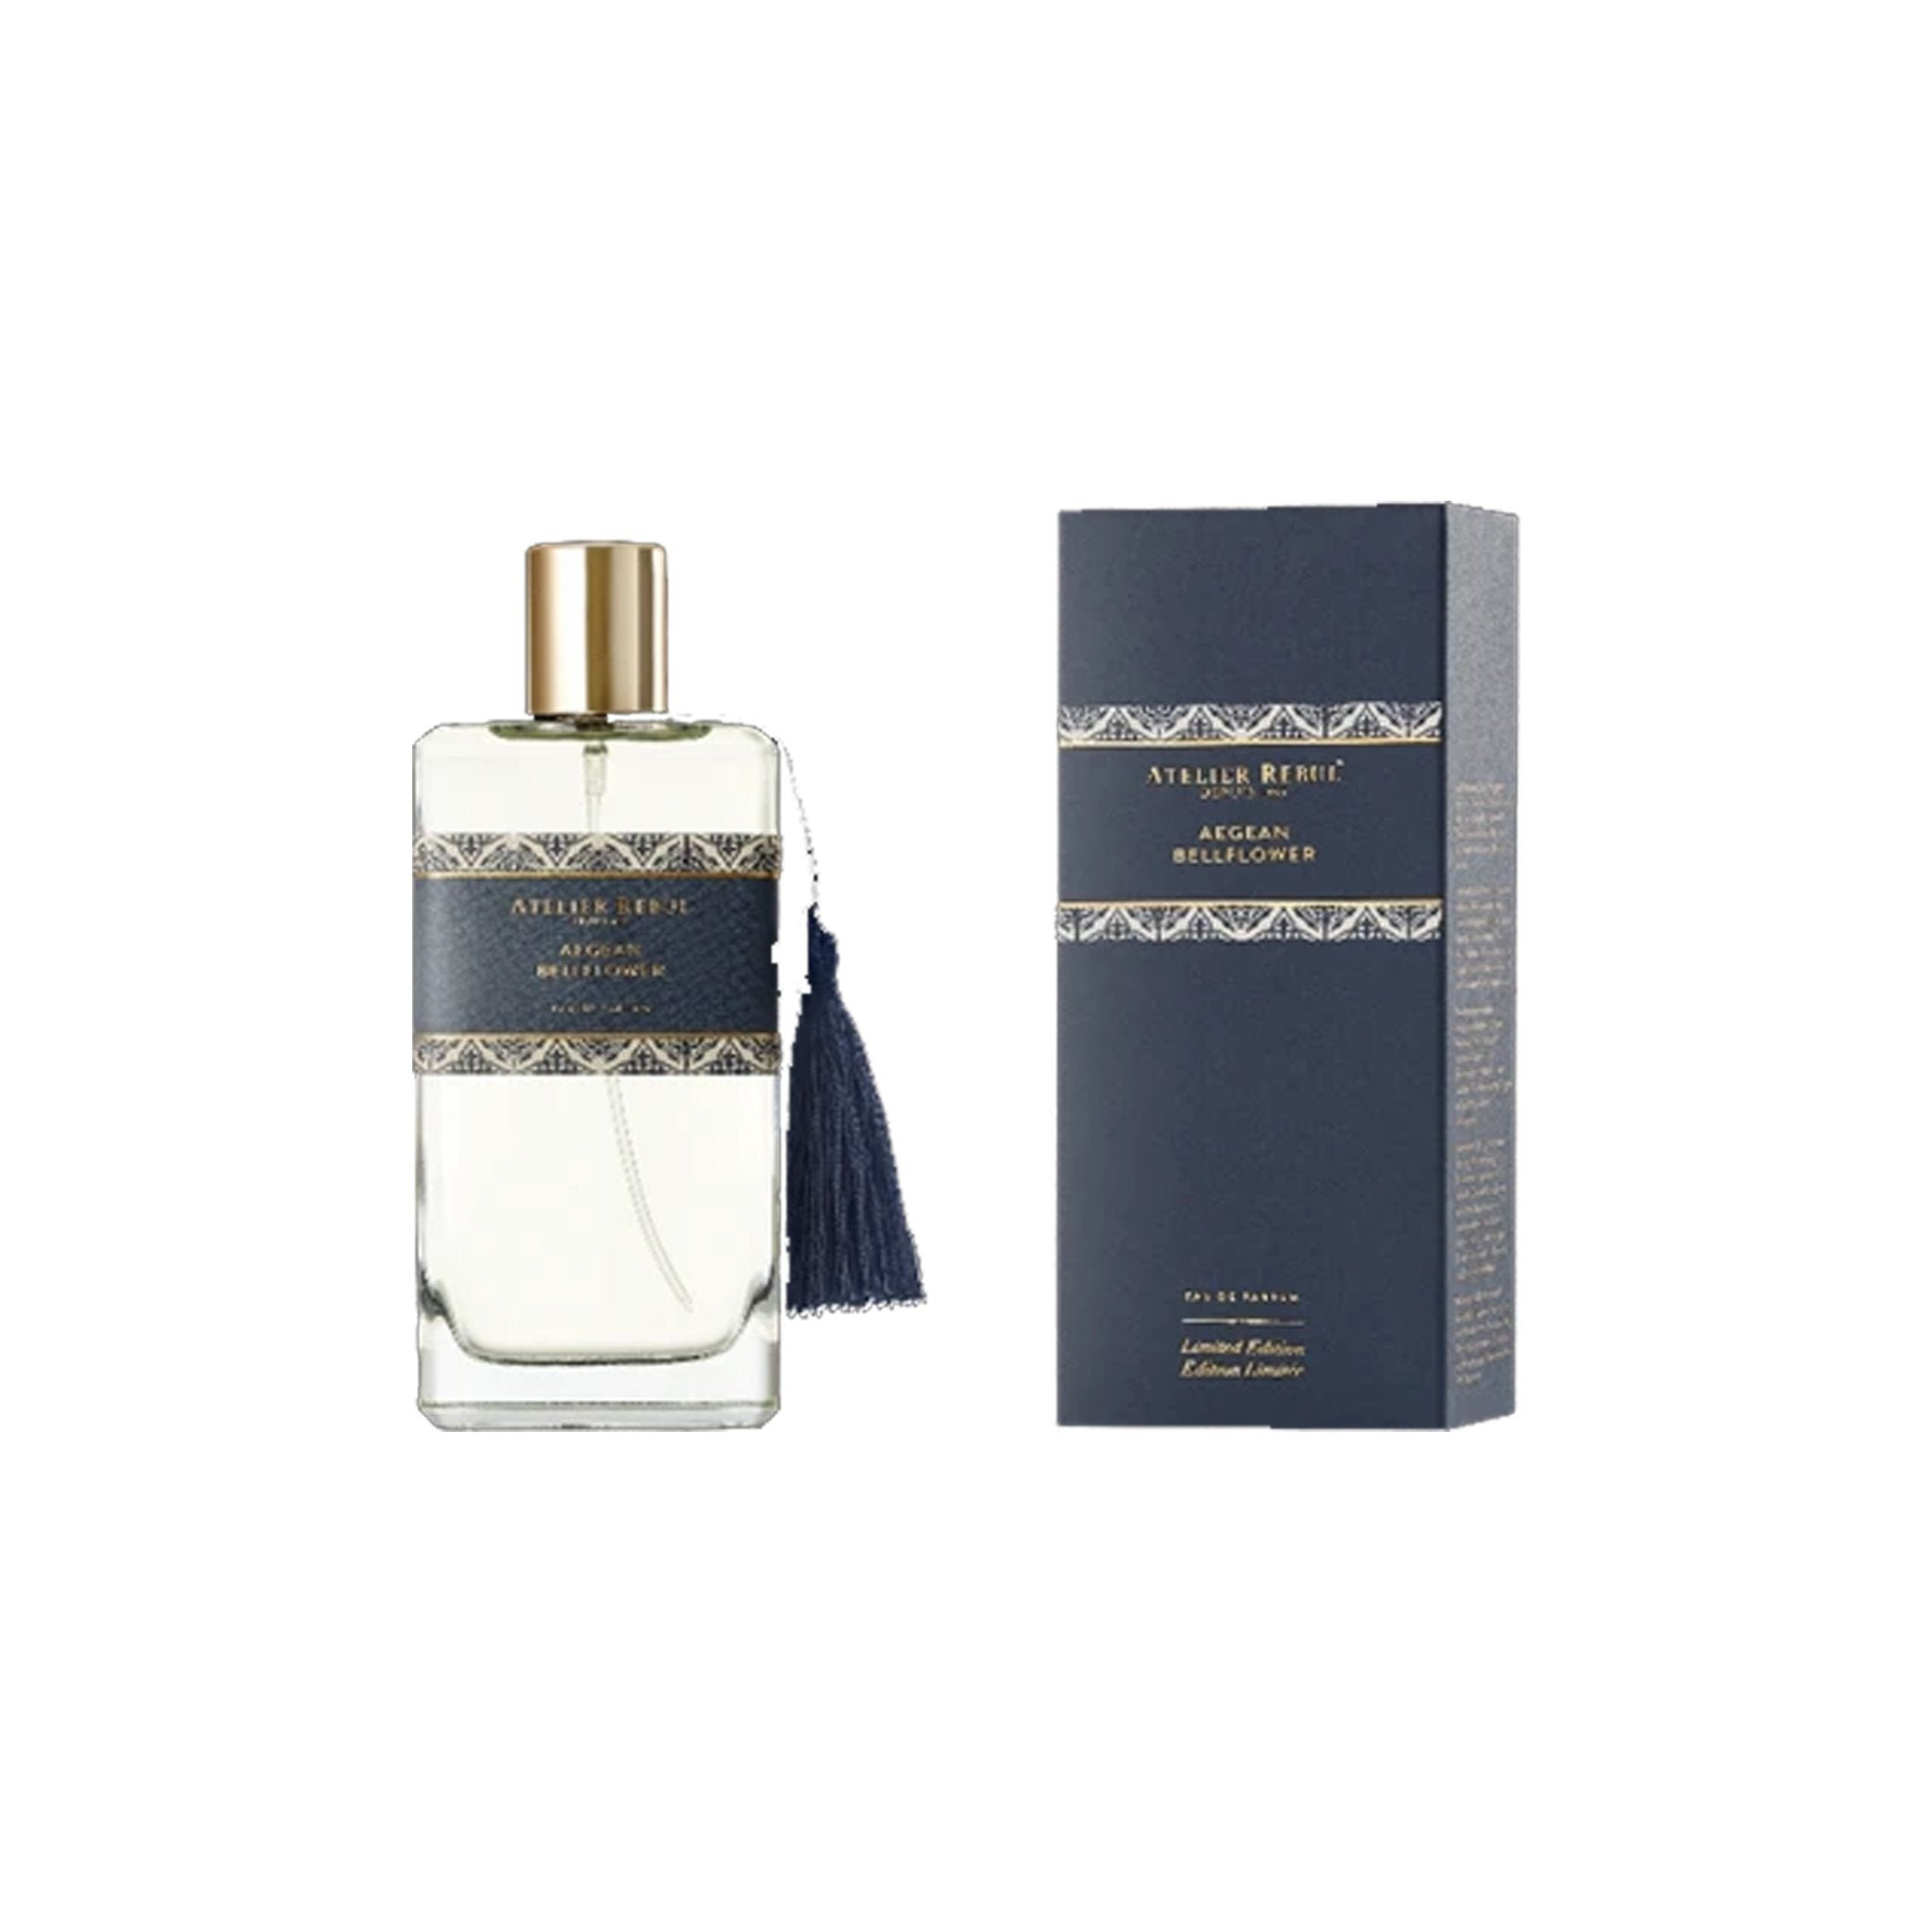 Aegean Bellflower Eau de Parfum 100ml for Women